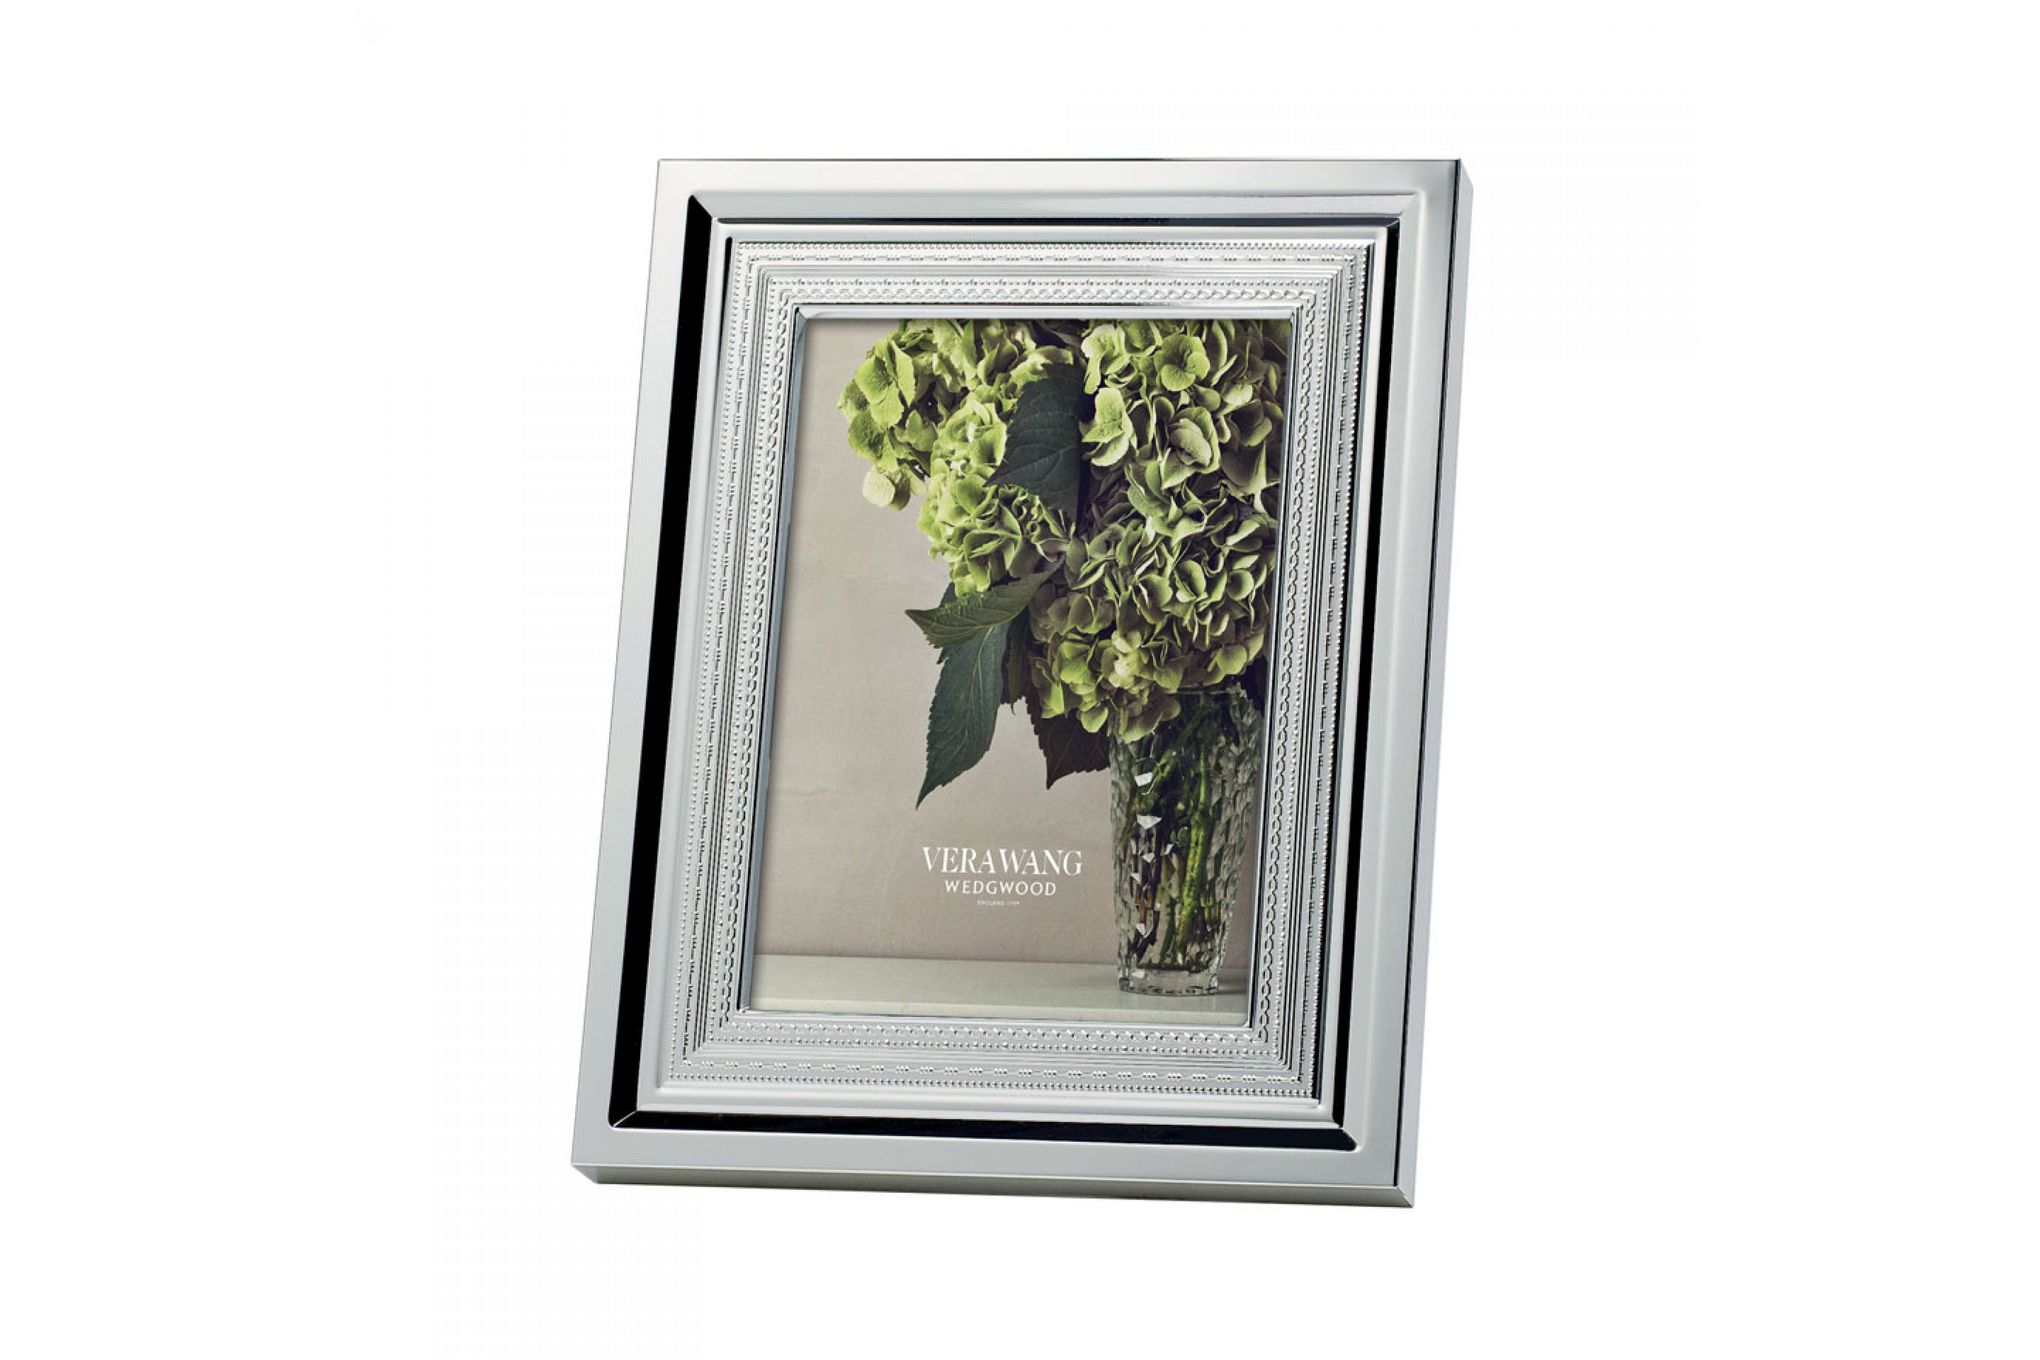 """Vera Wang for Wedgwood Gifts & Accessories Photo Frame With Love 8 x 10"""" thumb 1"""